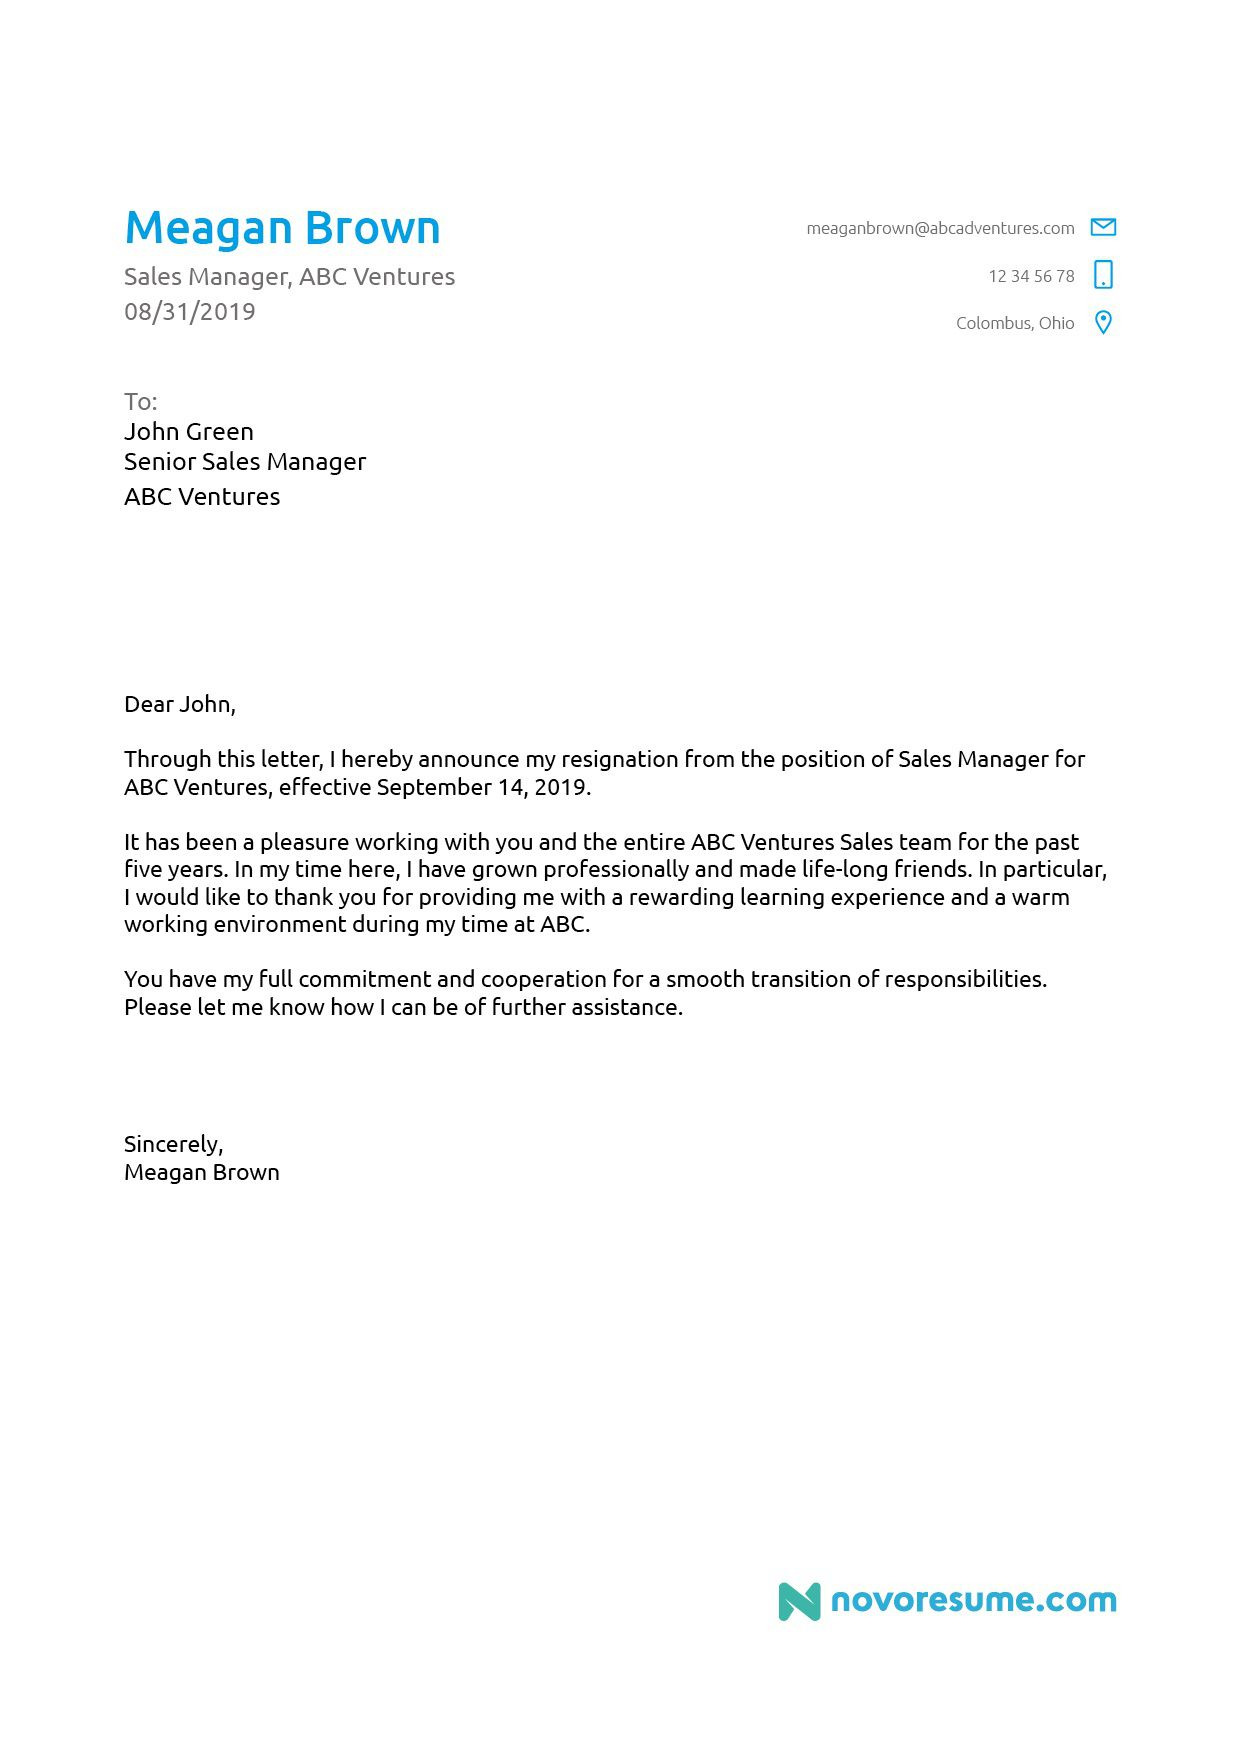 006 Remarkable Template For Letter Of Resignation Concept  Free With Notice Period WordFull